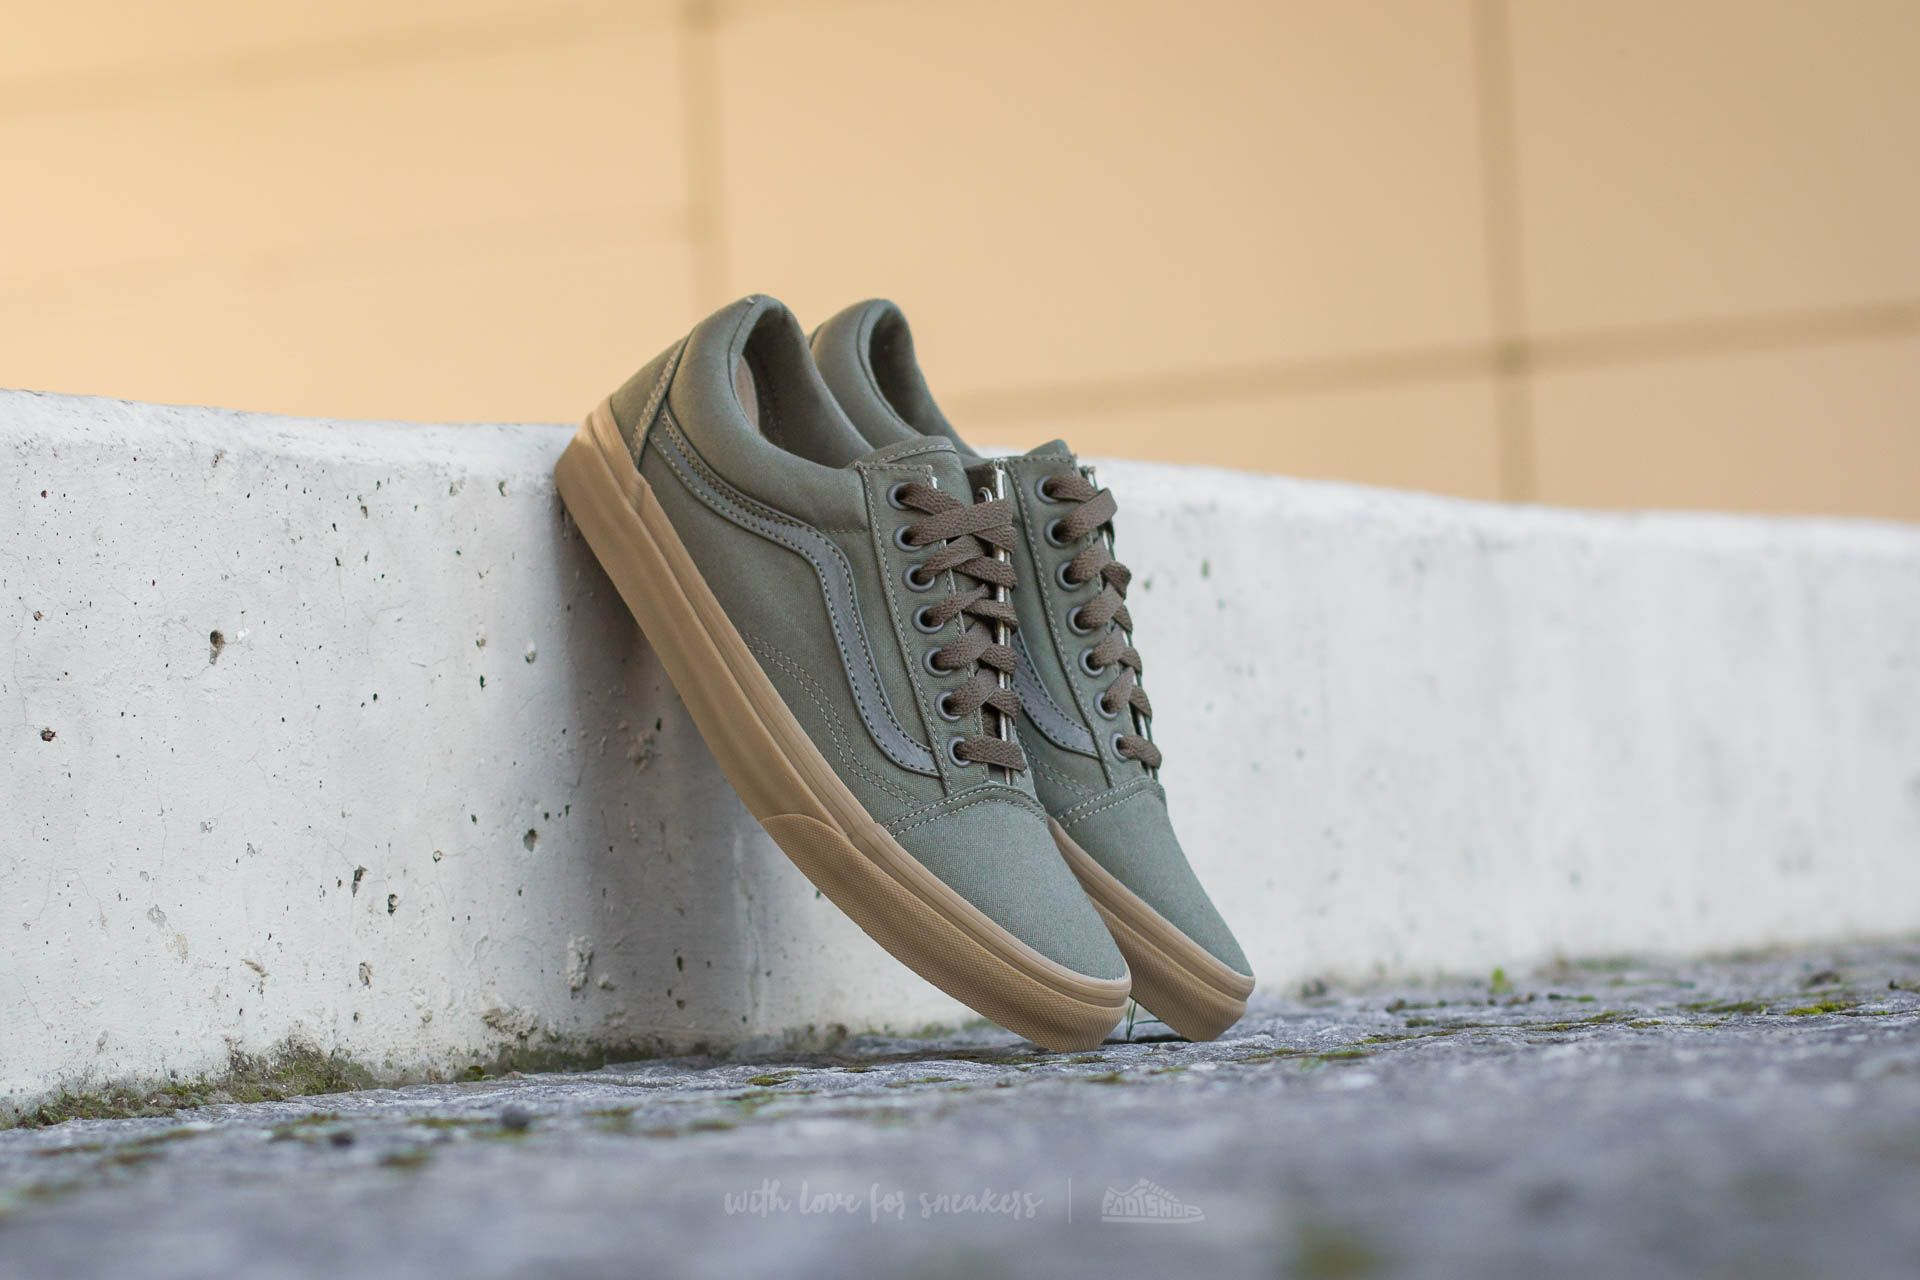 446757b4a87 Vans Old Skool (Canvas Gum) Ivy Green  Light Gum